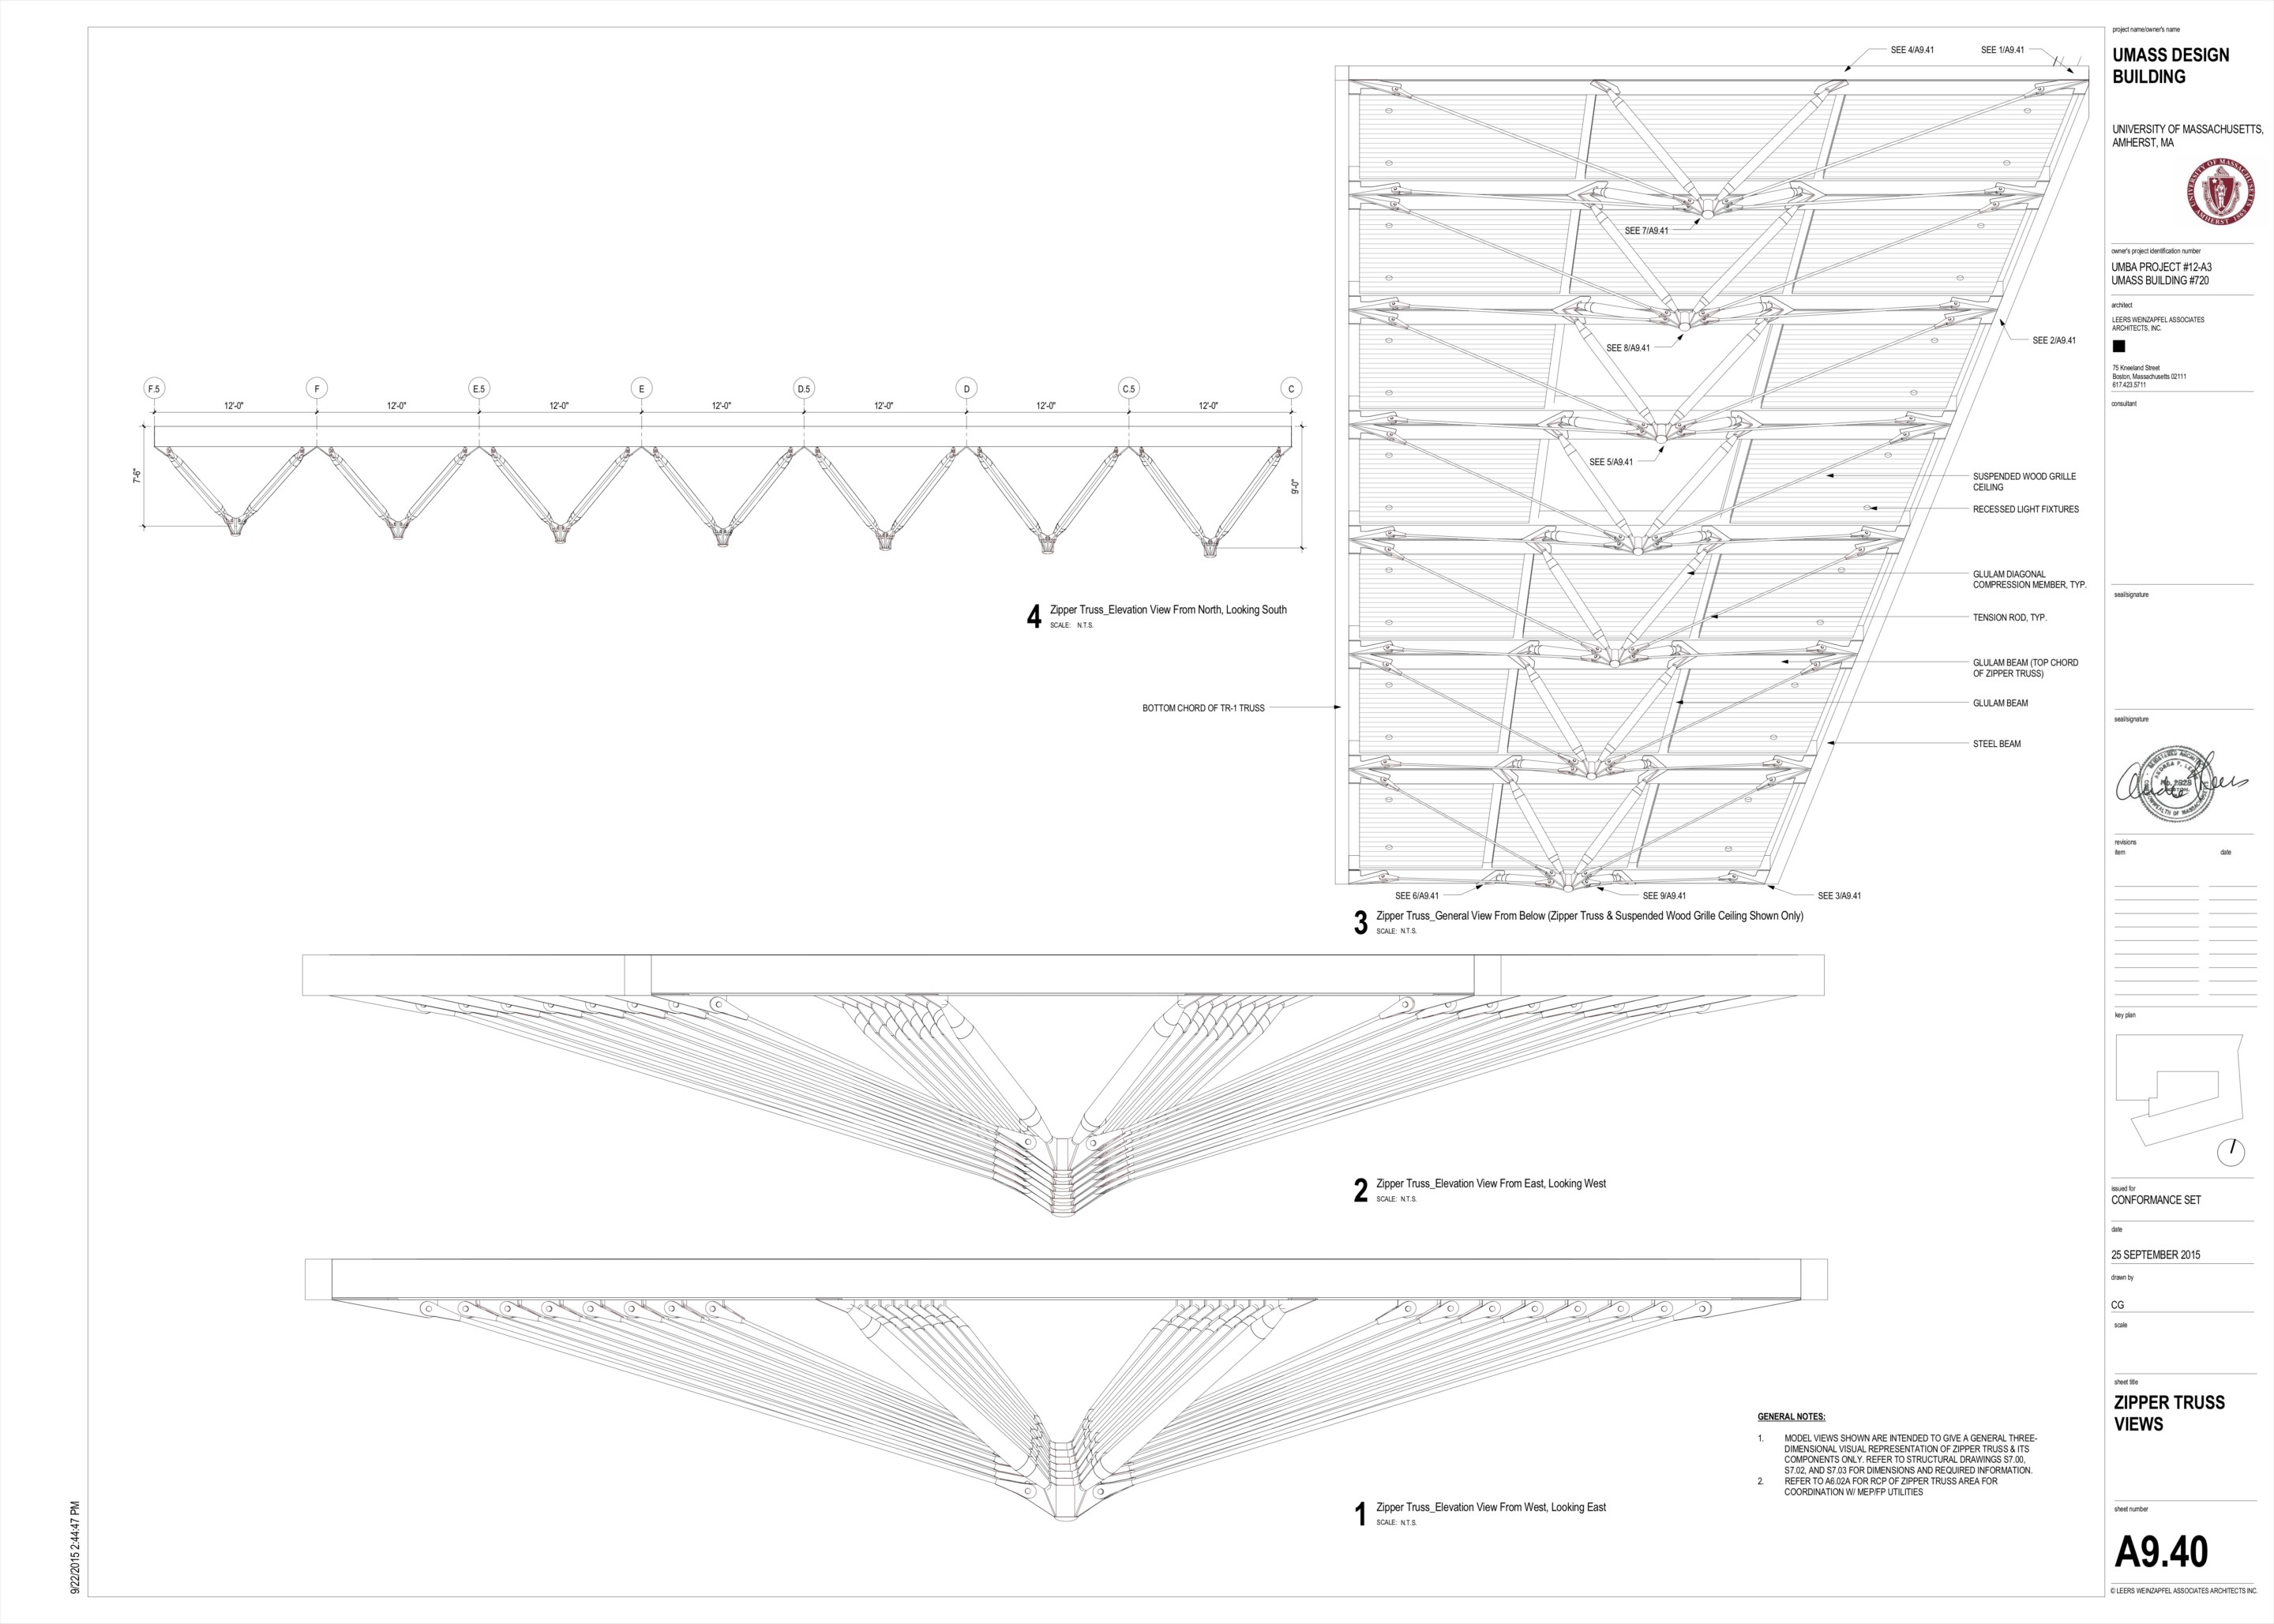 Detailed diagram of the project's zipper truss system found at the atrium